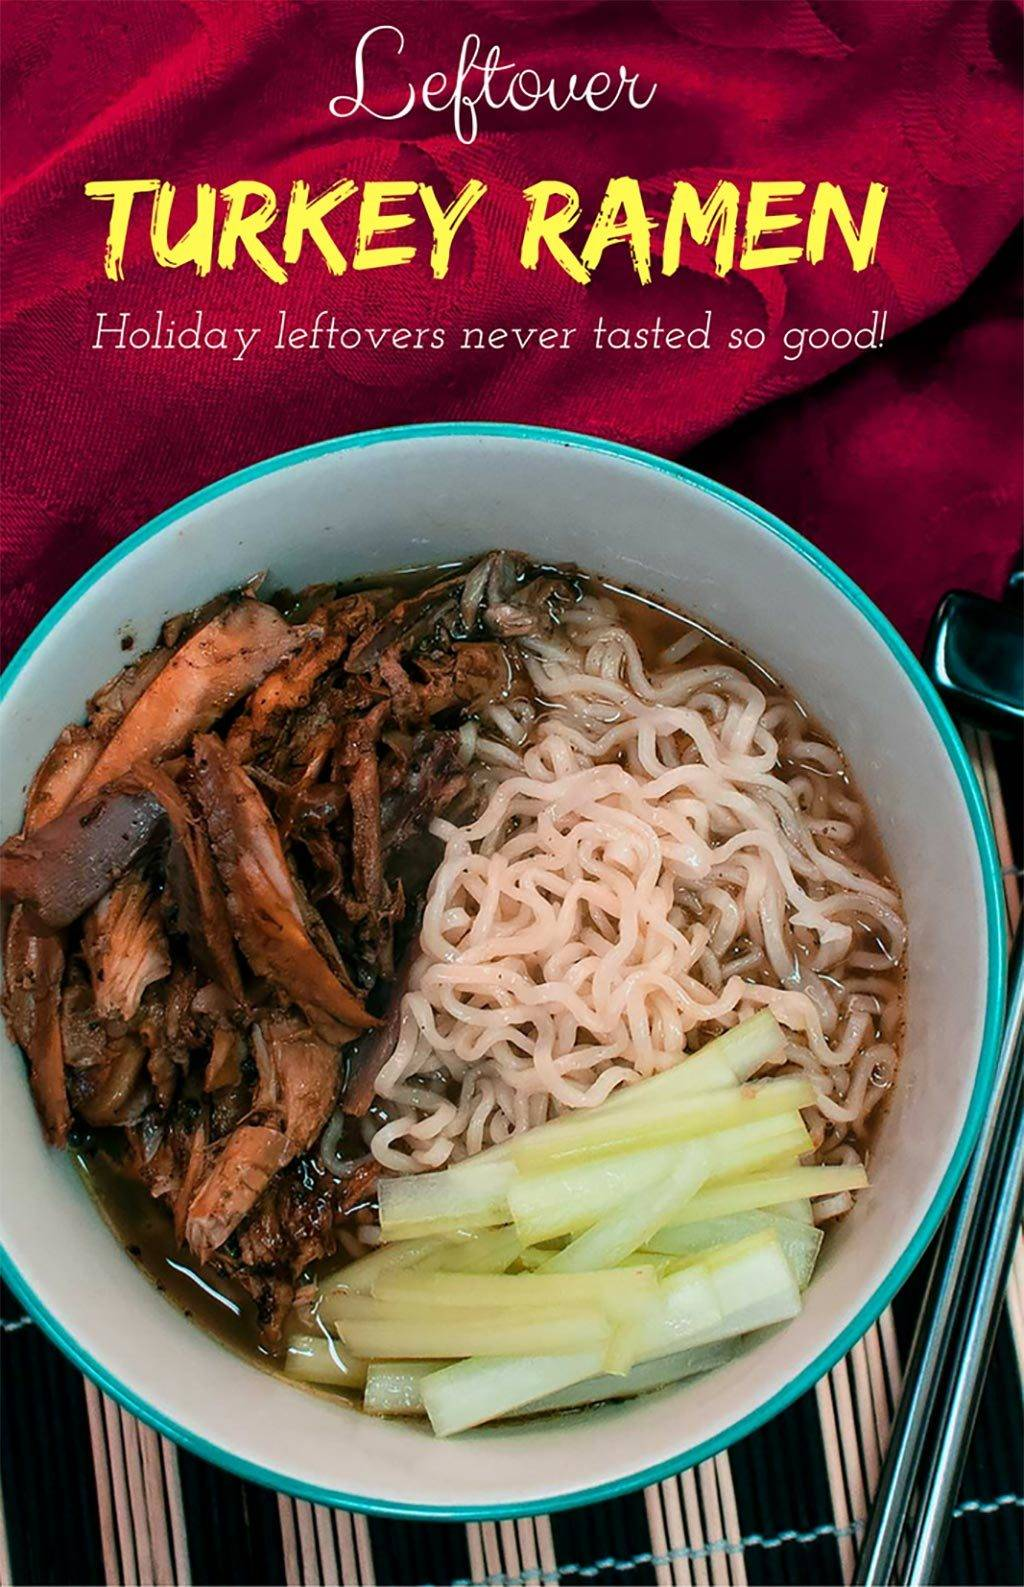 Leftover Turkey Ramen – Holiday leftovers never tasted so good